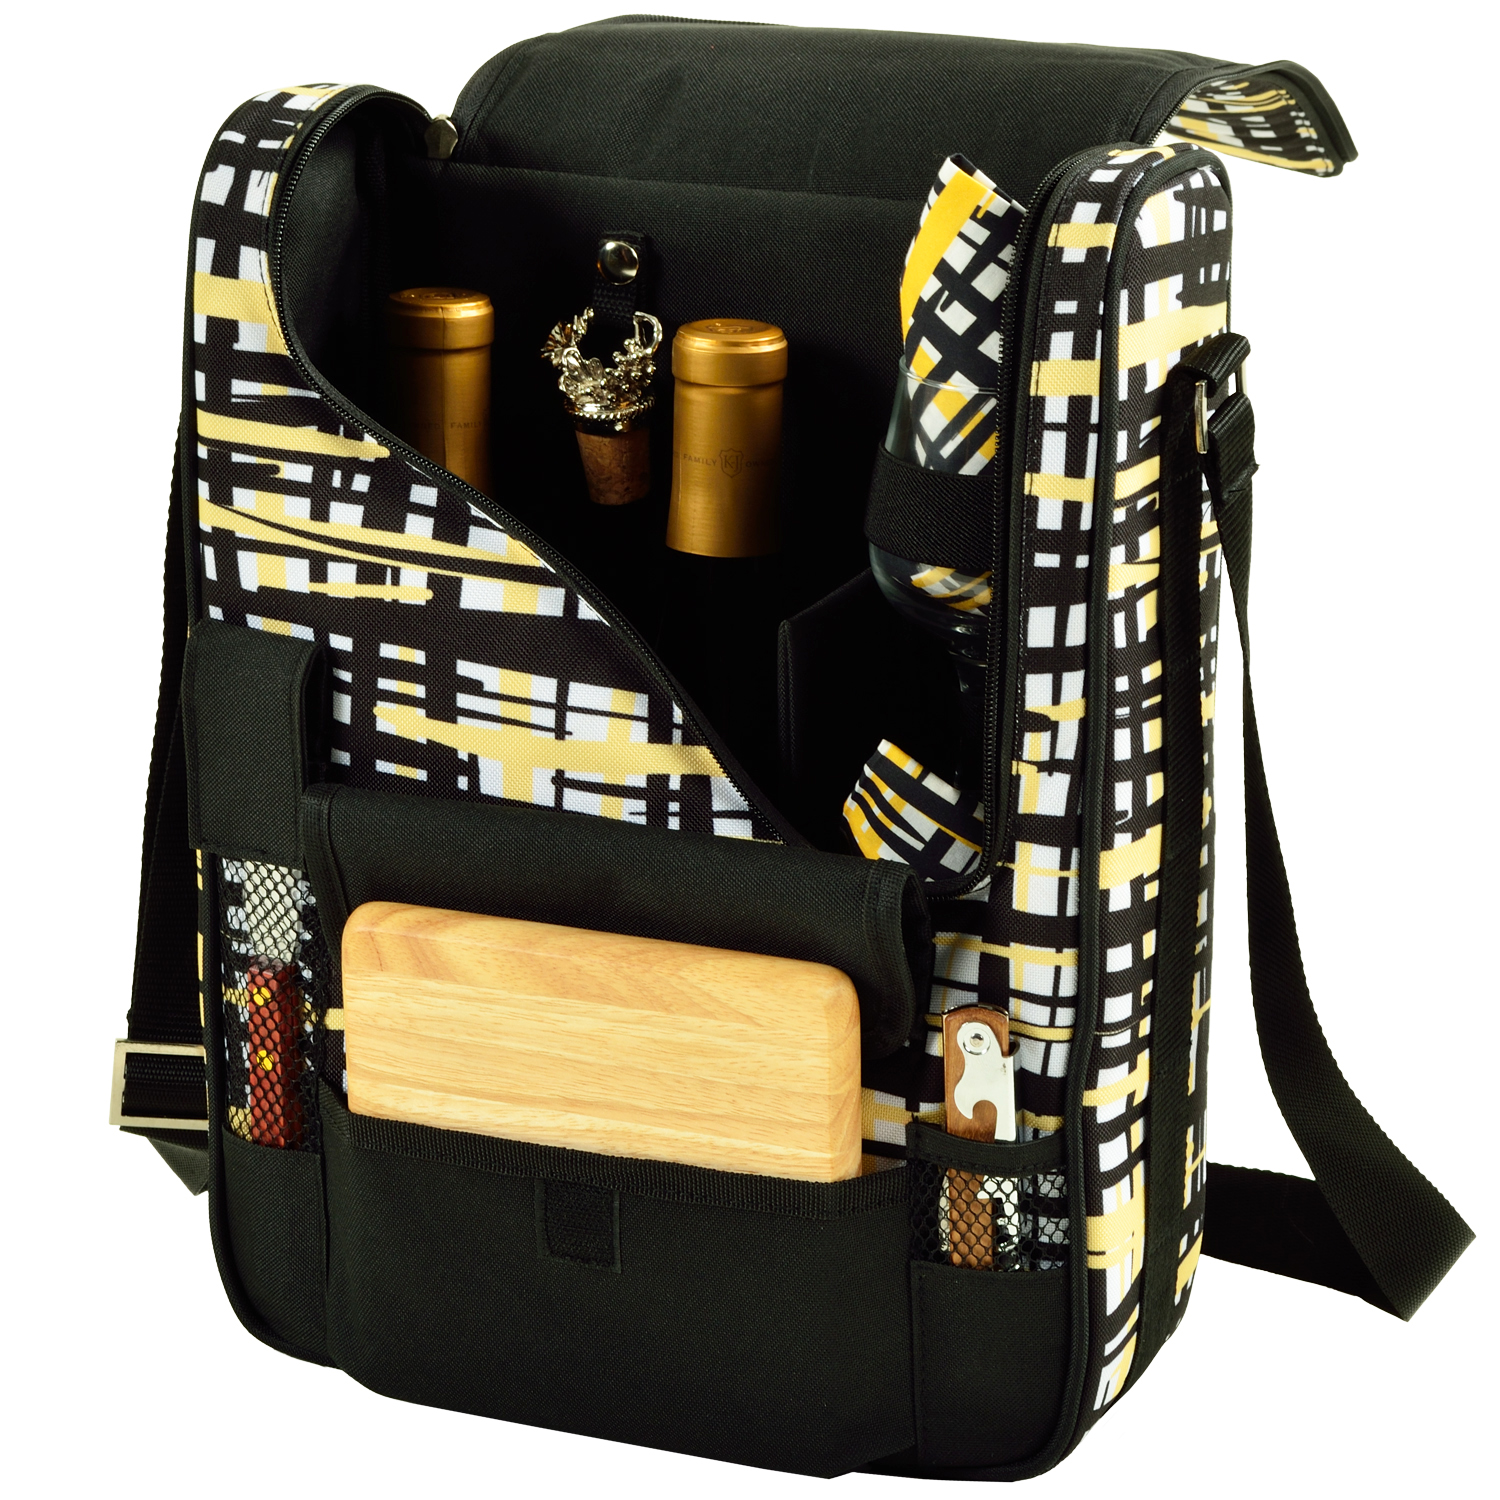 Picnic At Ascot Bordeaux Wine Cheese Cooler Bag W Glass Wine Glasses Equipped For 2 Paris